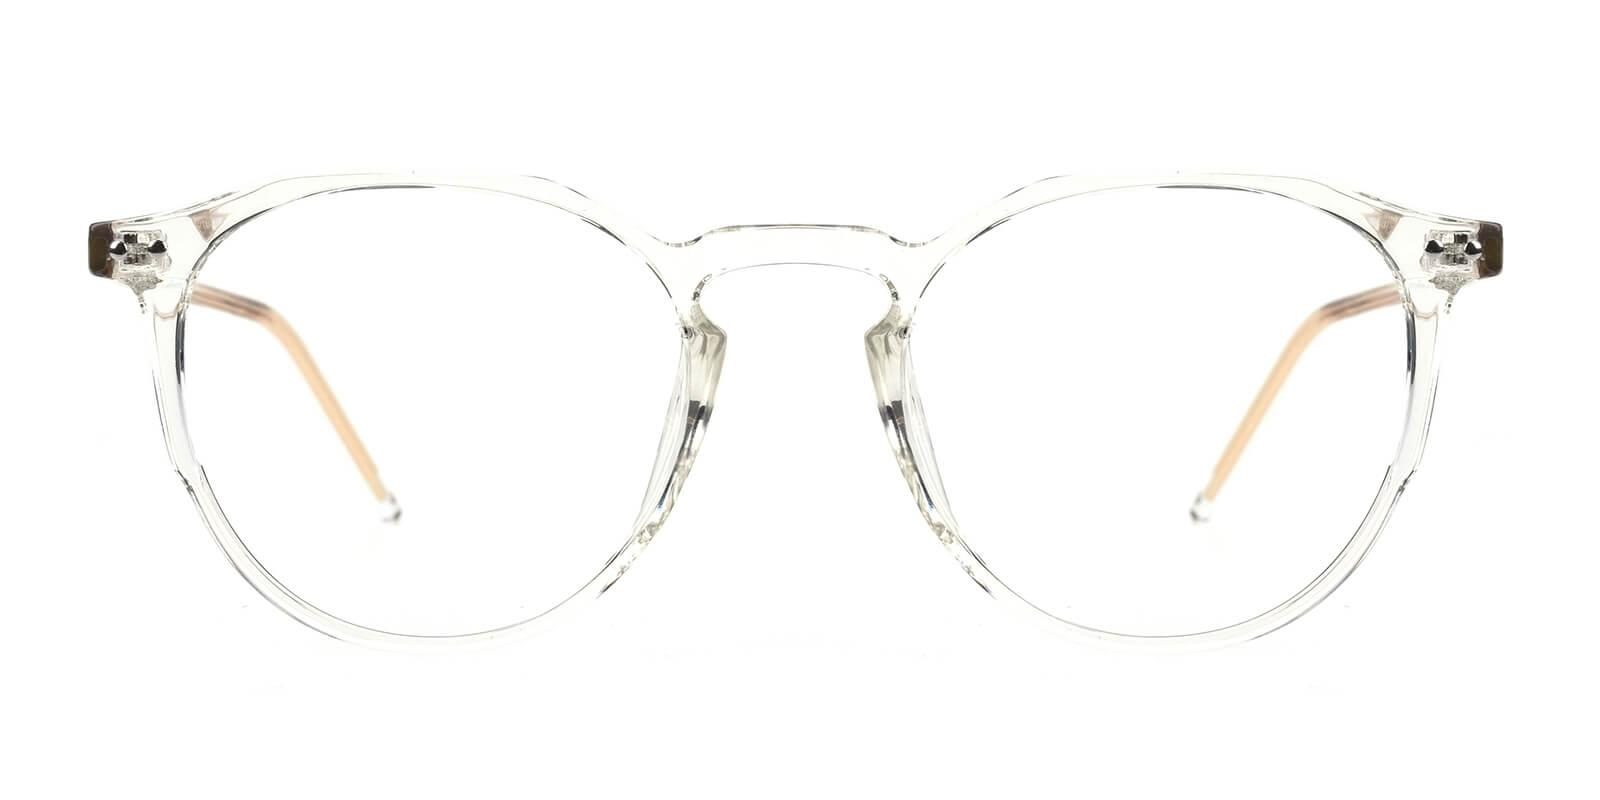 Mila-Translucent-Round-Acetate-Eyeglasses-additional2